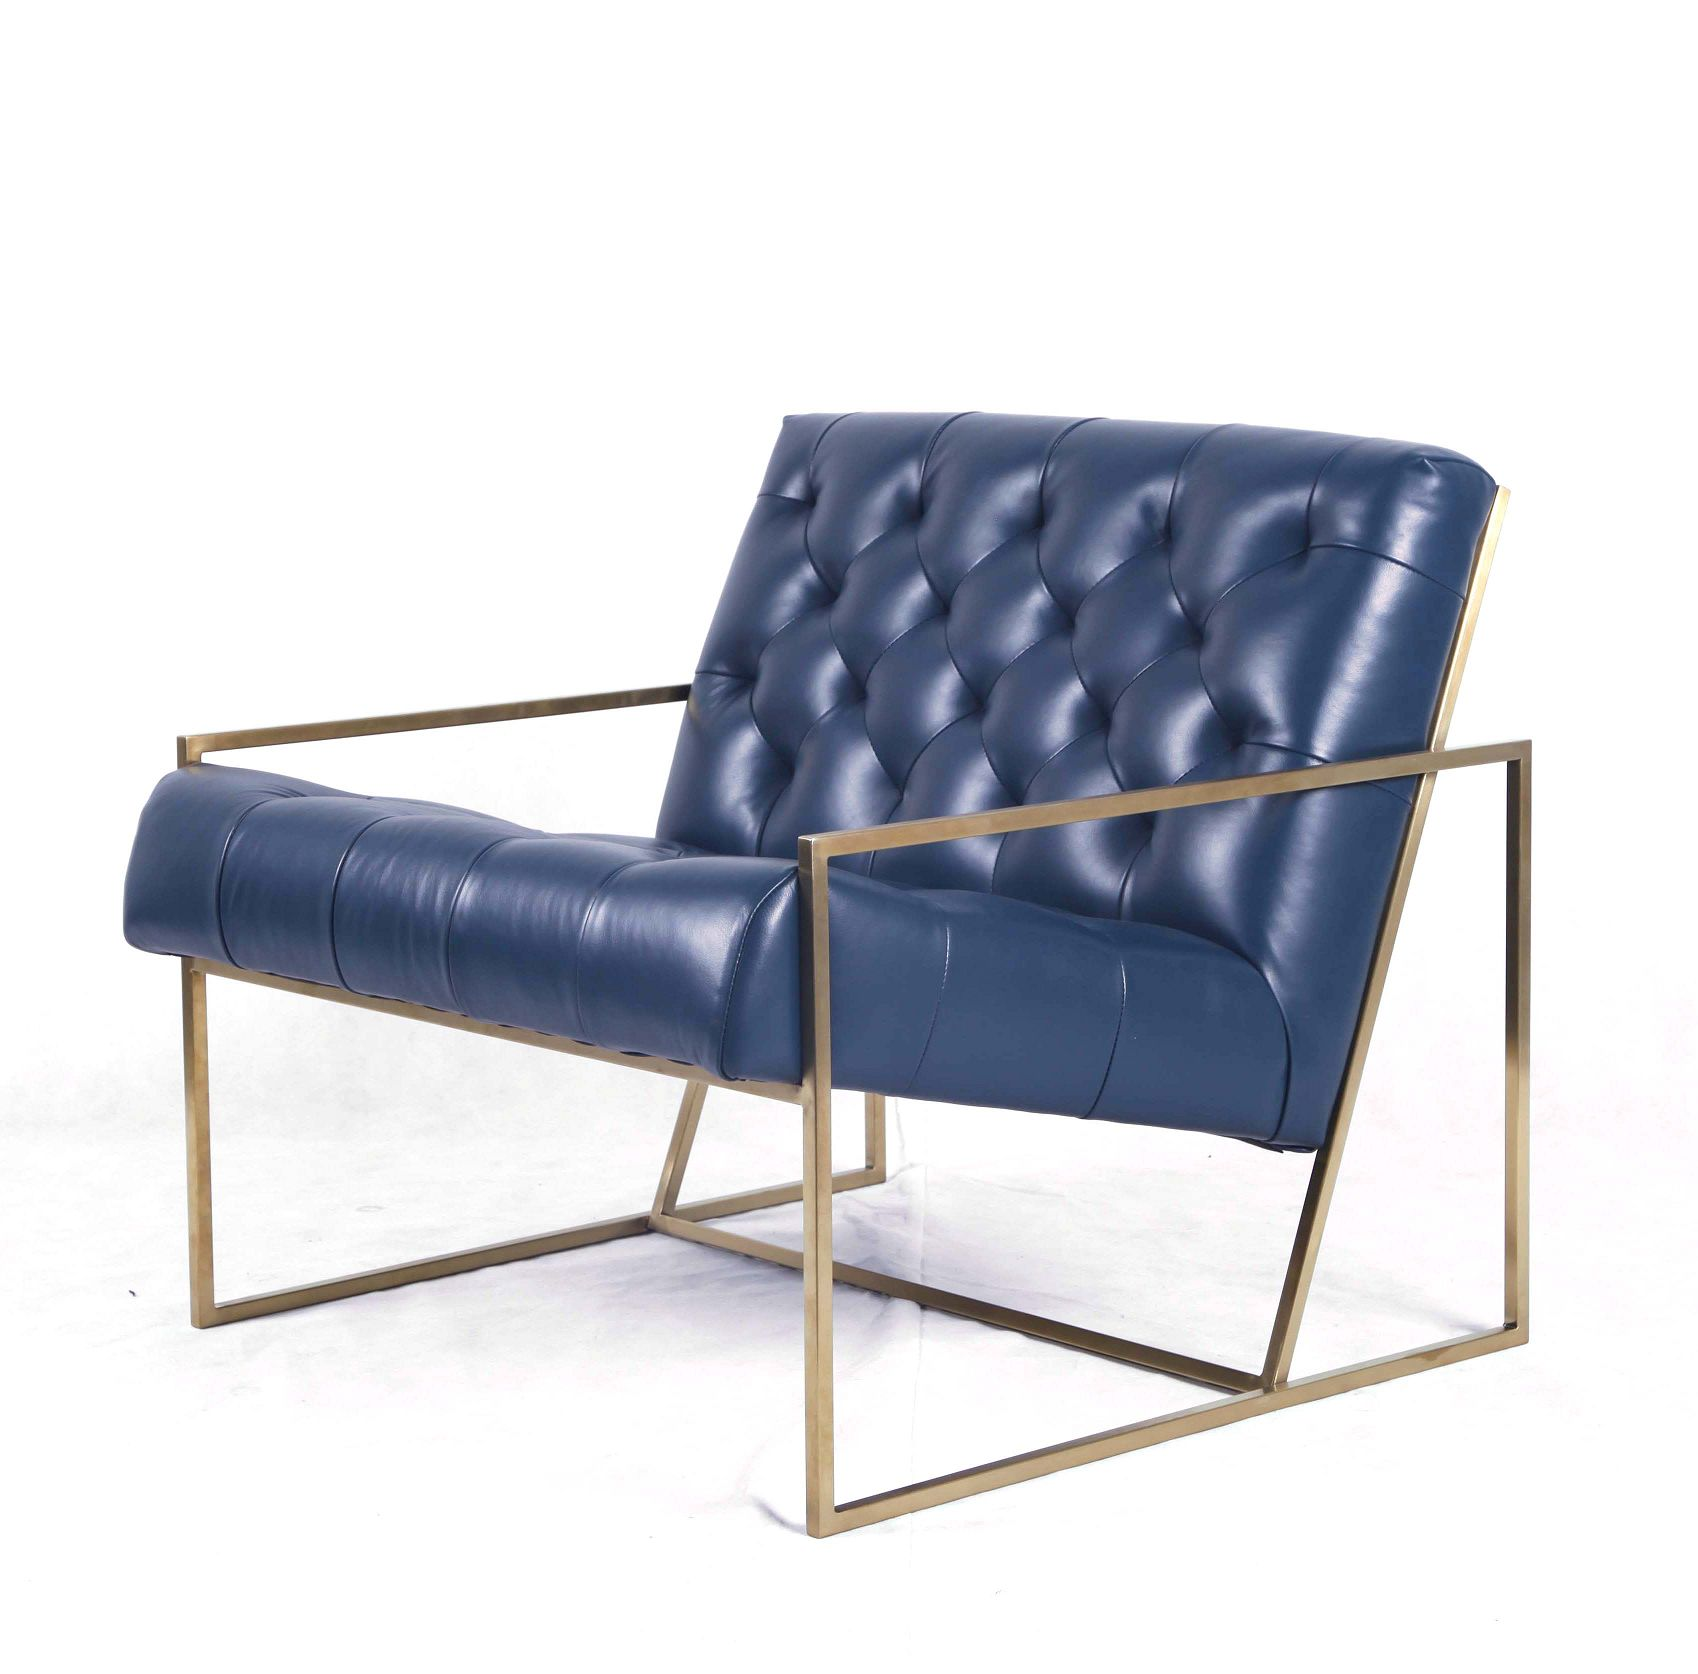 简约复古休闲椅(Thin Frame Lounge Chair)